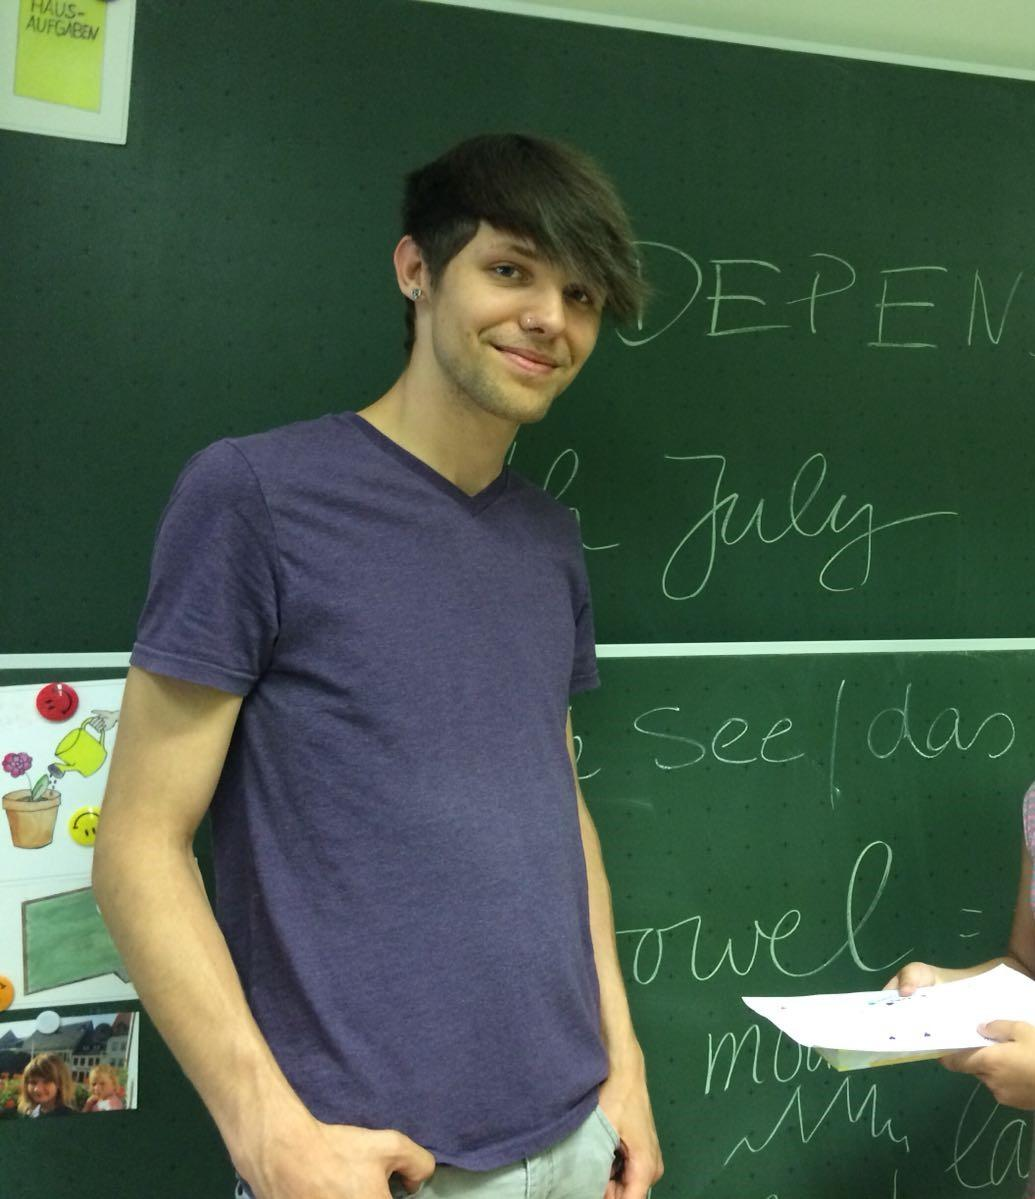 Student standing in front of a chalk board